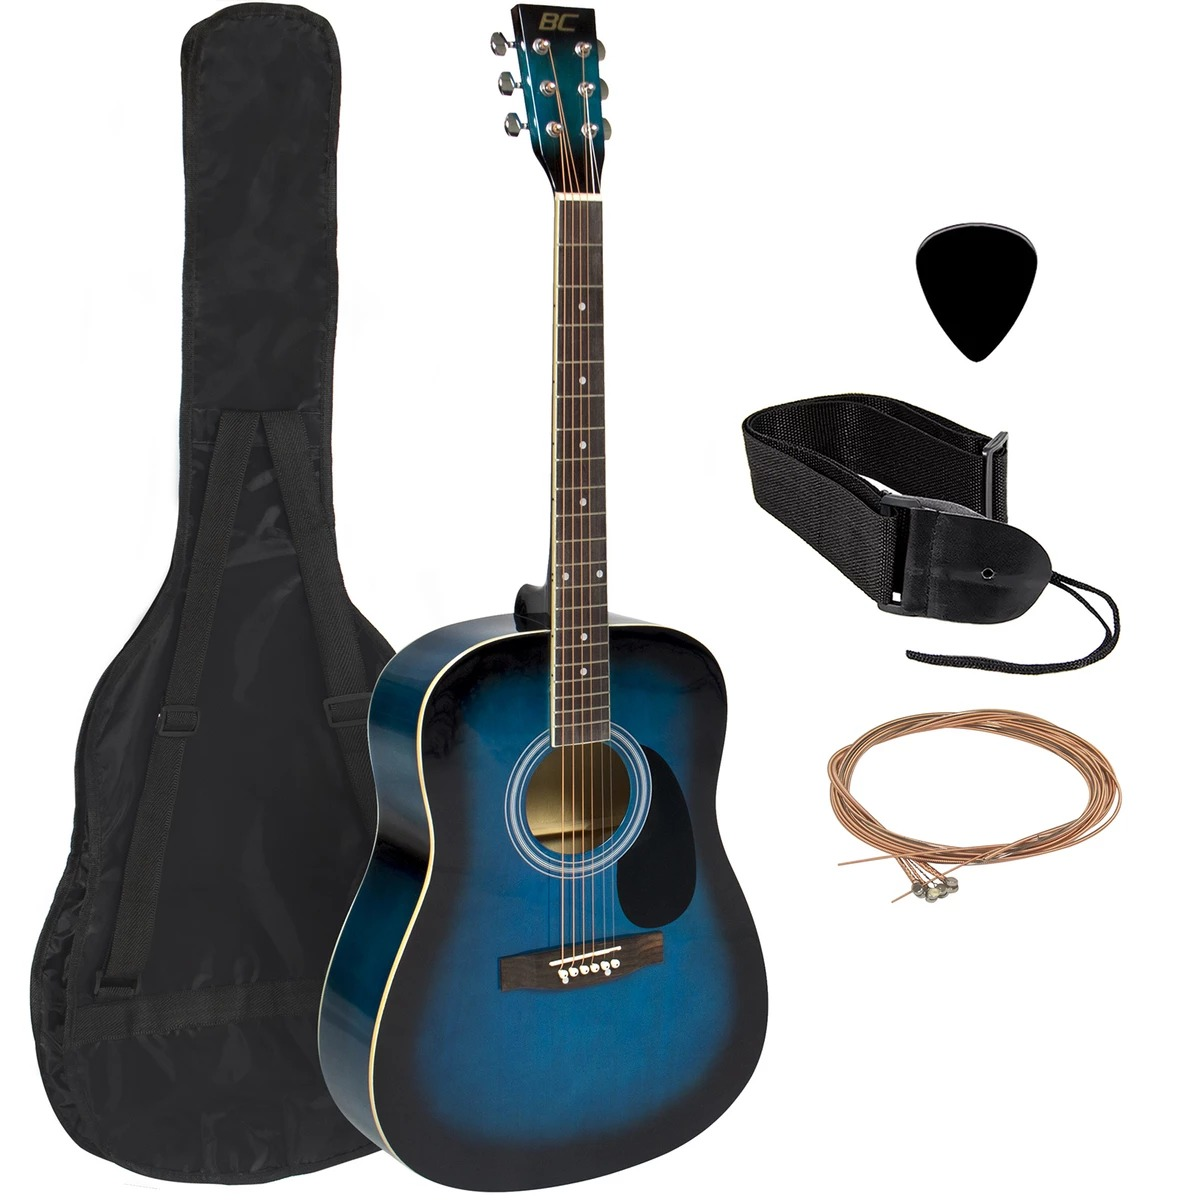 ihocon: Best Choice Products 41in Acoustic Guitar Starter Kit w/ Case, Pick, Strap, Extra Strings 民謠吉他, 含保護套, 撥片, 背帶和額外琴弦